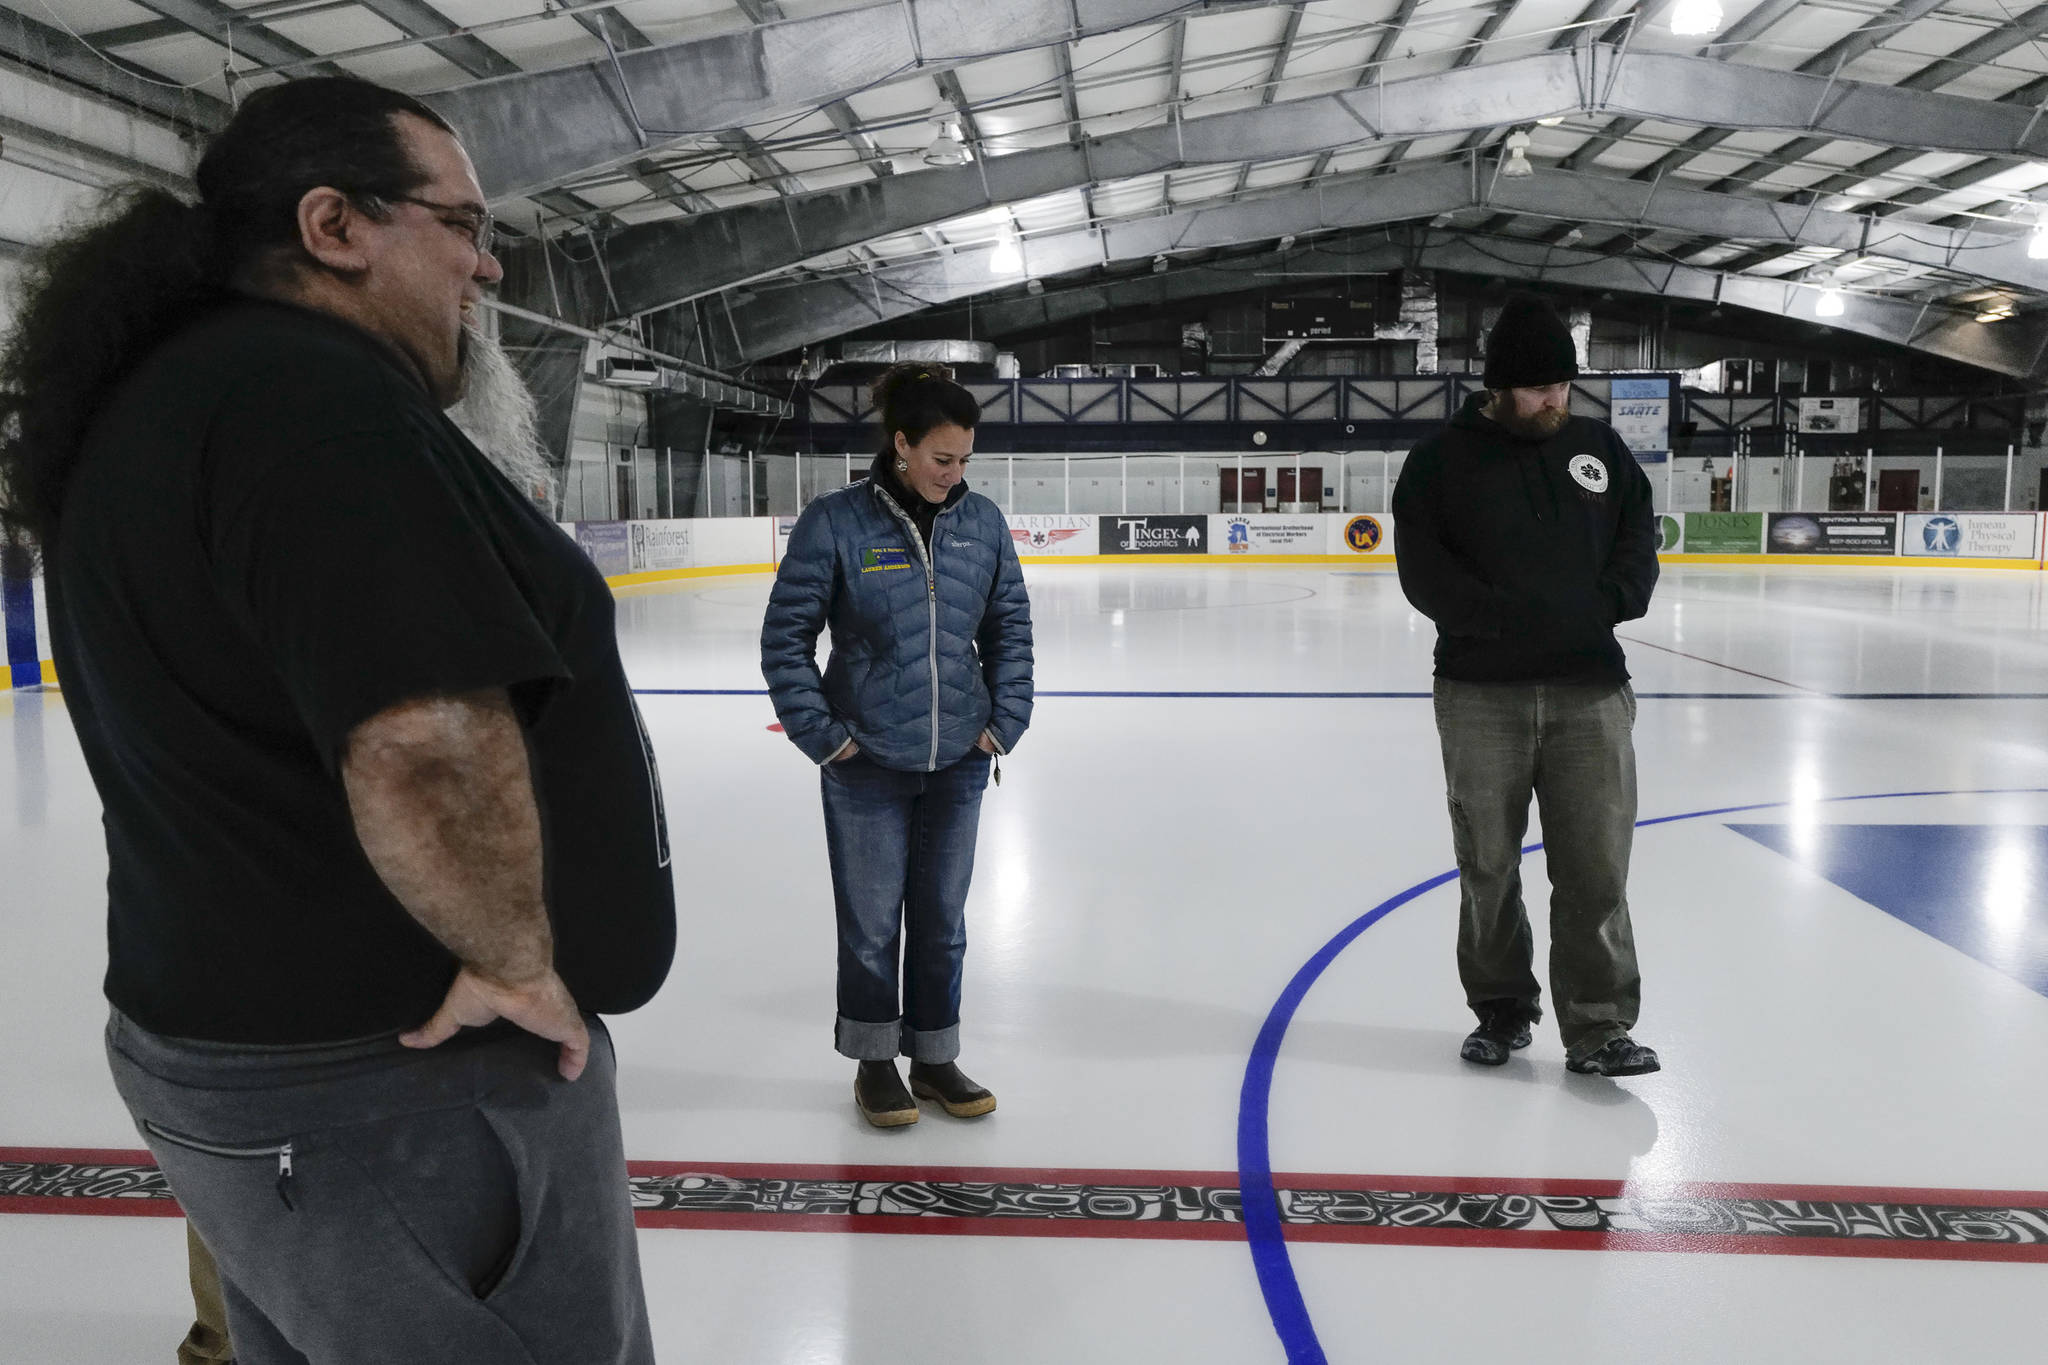 Tsimshian artist Abel Ryan Tsimshian, left, talks Treadwell Arena Manager Lauren Anderson, center, and Program Coordinator Thomas McKenzie about the red line at the Treadwell Arena on Thursday, August 1, 2019. Ryan worked with students in the BAM After School Program to draw animals in Northwest Coast formline designs to be incorporated in the hockey rink ice. The Treadwell Arena opens for the season on Monday. (Michael Penn | Juneau Empire)